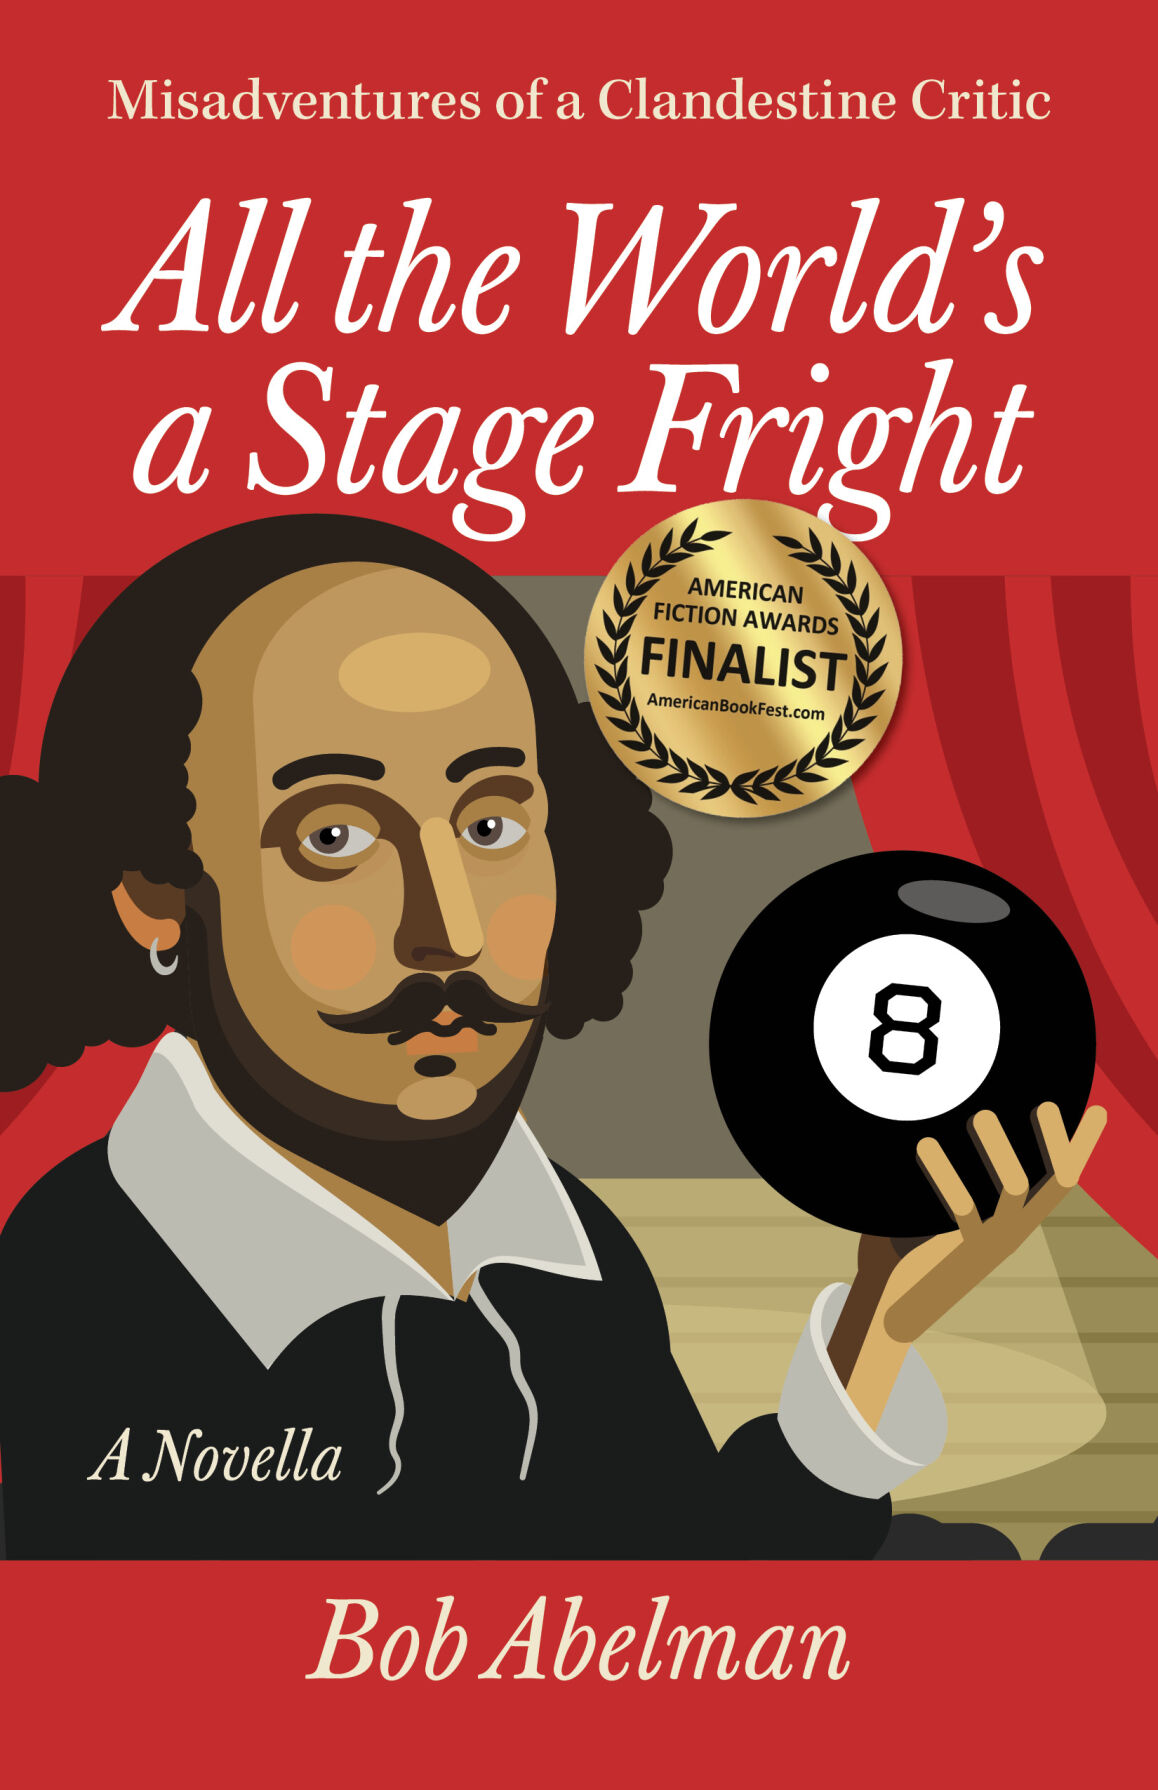 All the World's a Stage Fright: Misadventures of a Clandestine Critic award